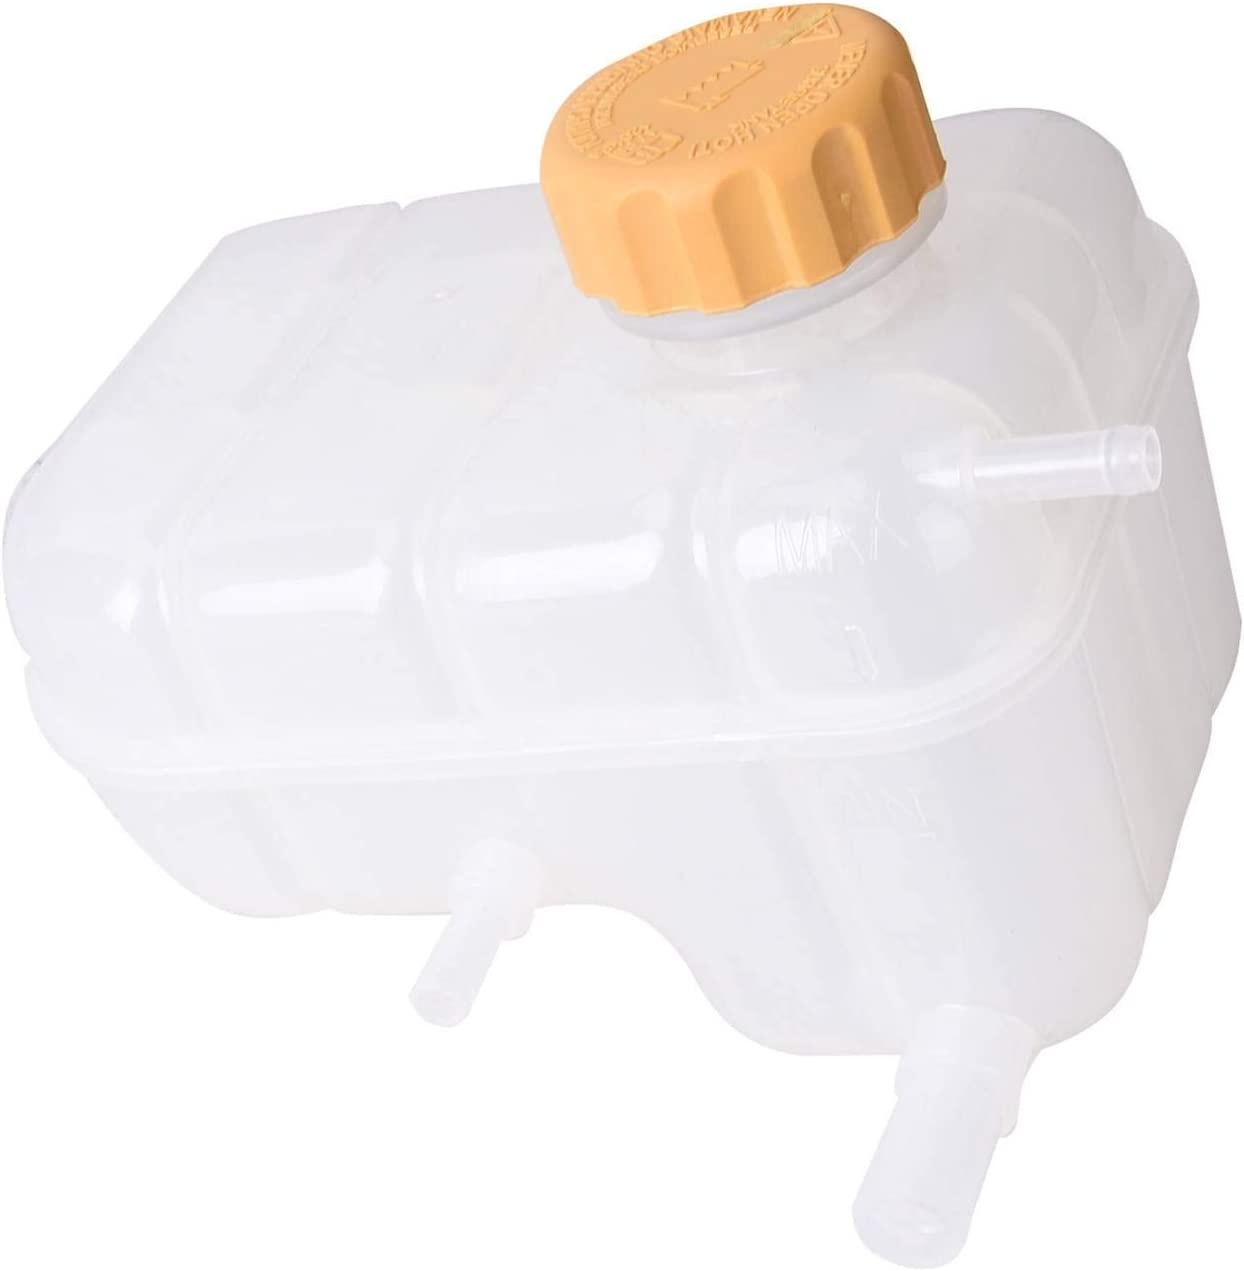 AUTOMUTO Radiator Coolant Fluid Overflow Bottle Tank Reservoir Compatible with 2004-2010 Chevrolet Optra 2005-2008 Suzuki Forenza 96553255 96813425